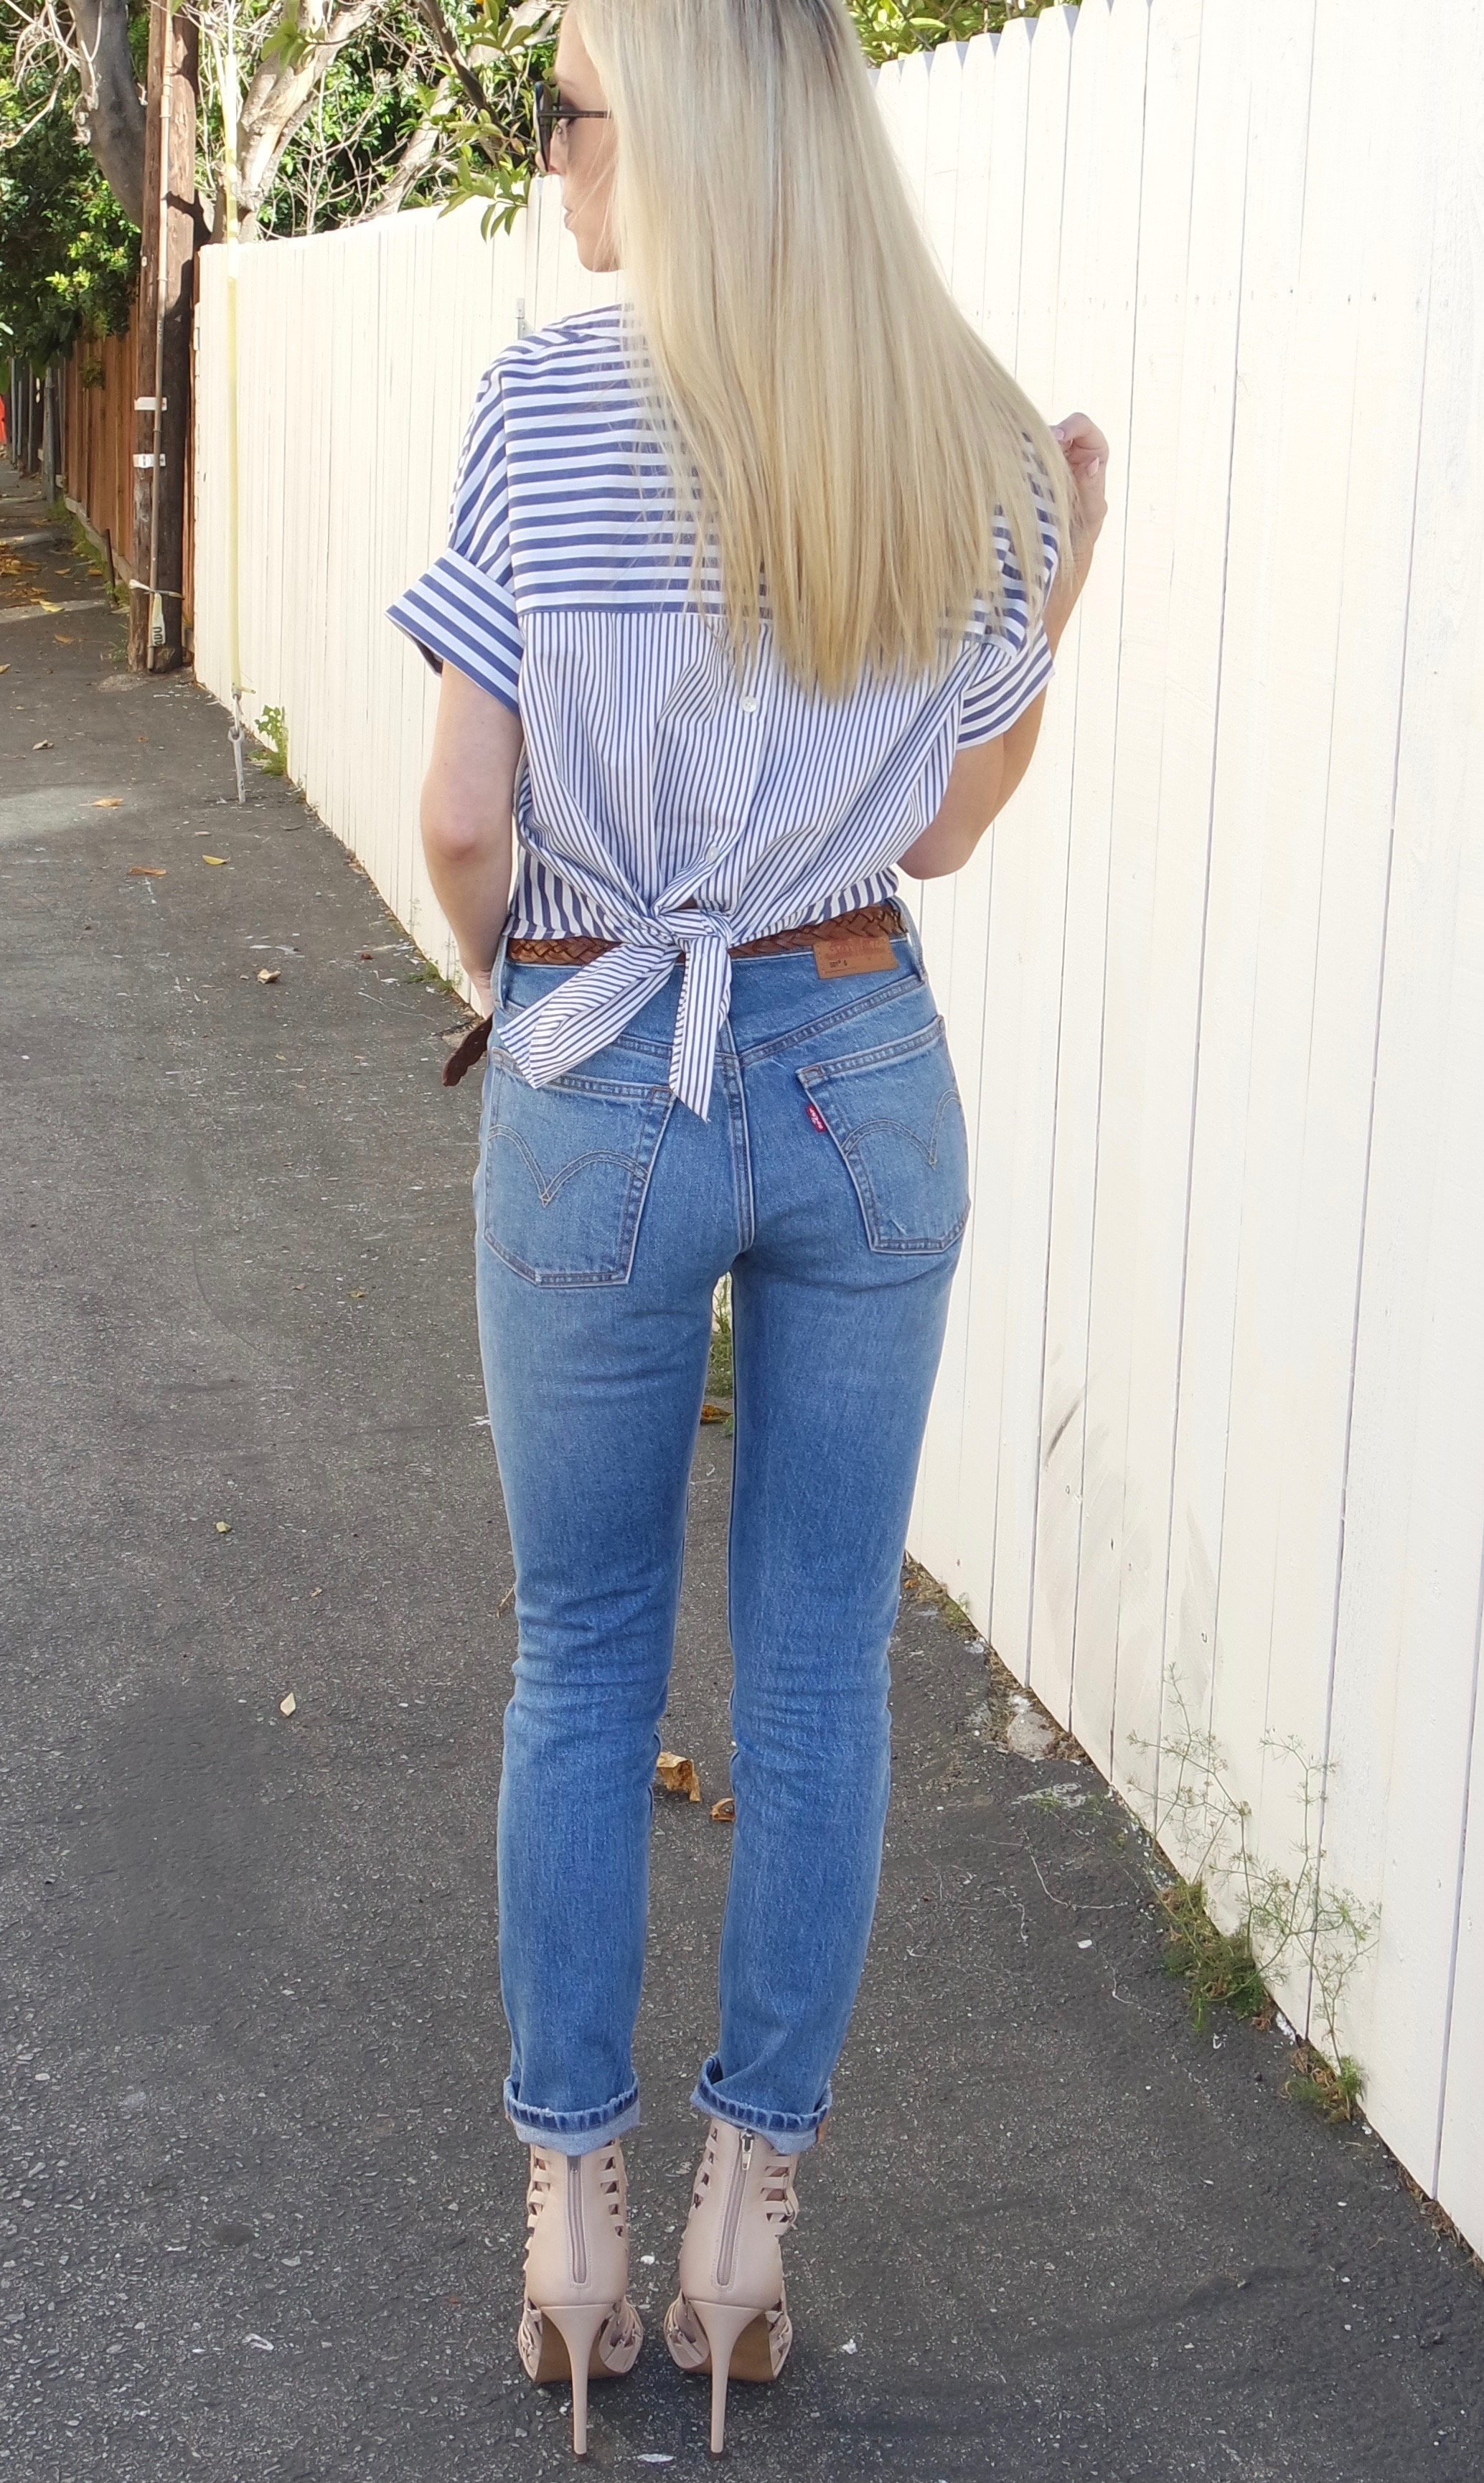 Top Jean Picks from Levi's || Not Just Your Mom's Jeans